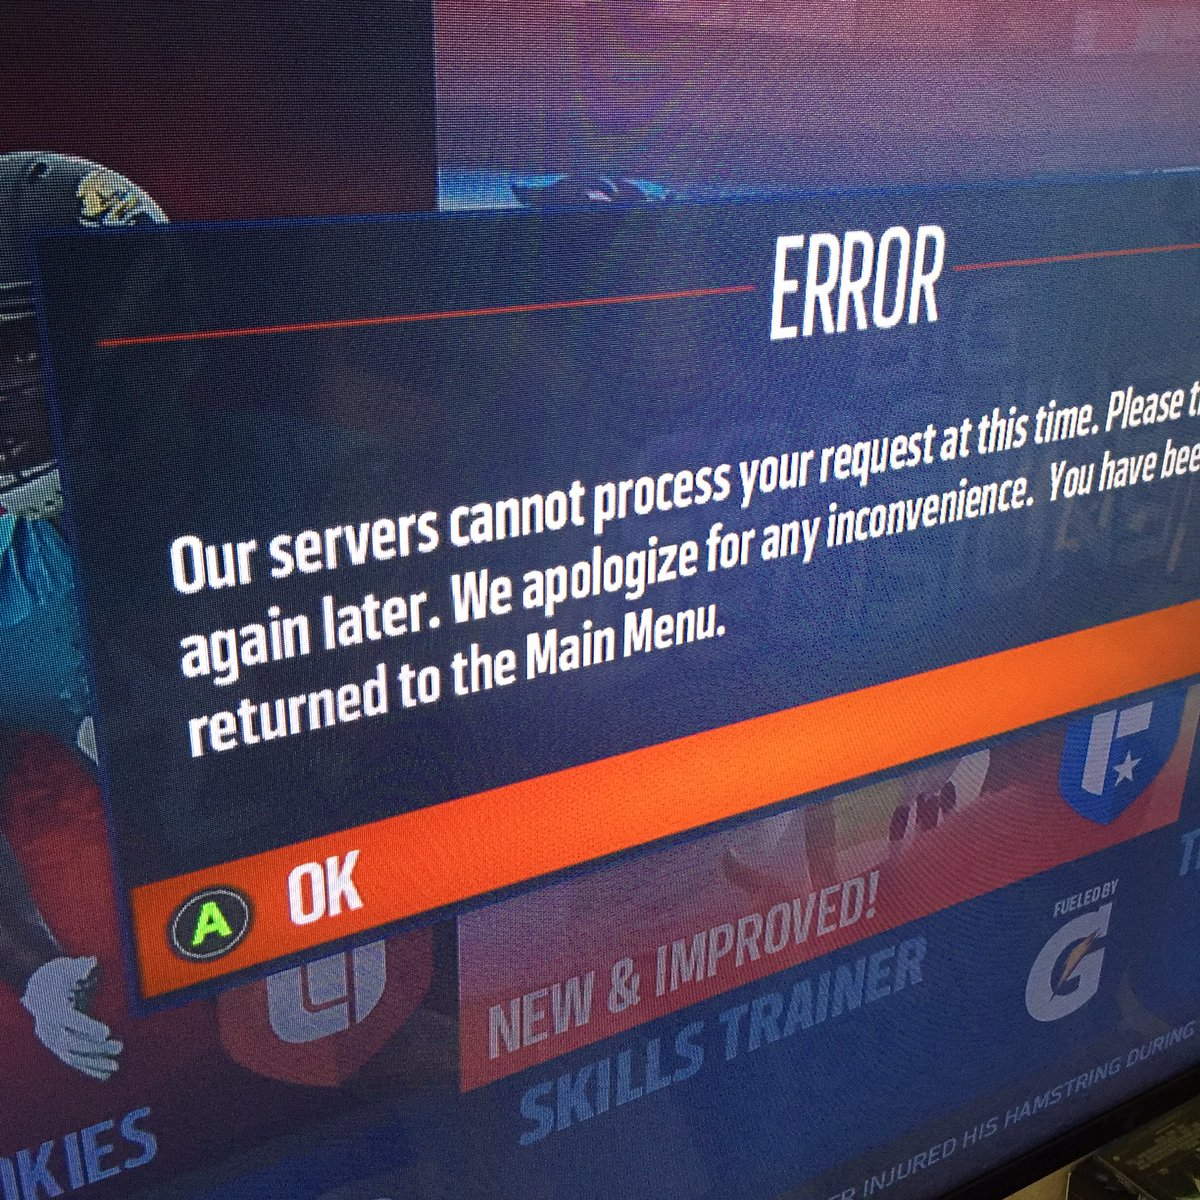 @EASPORTS you're killing me smalls! What gives? Is it just me? #madden